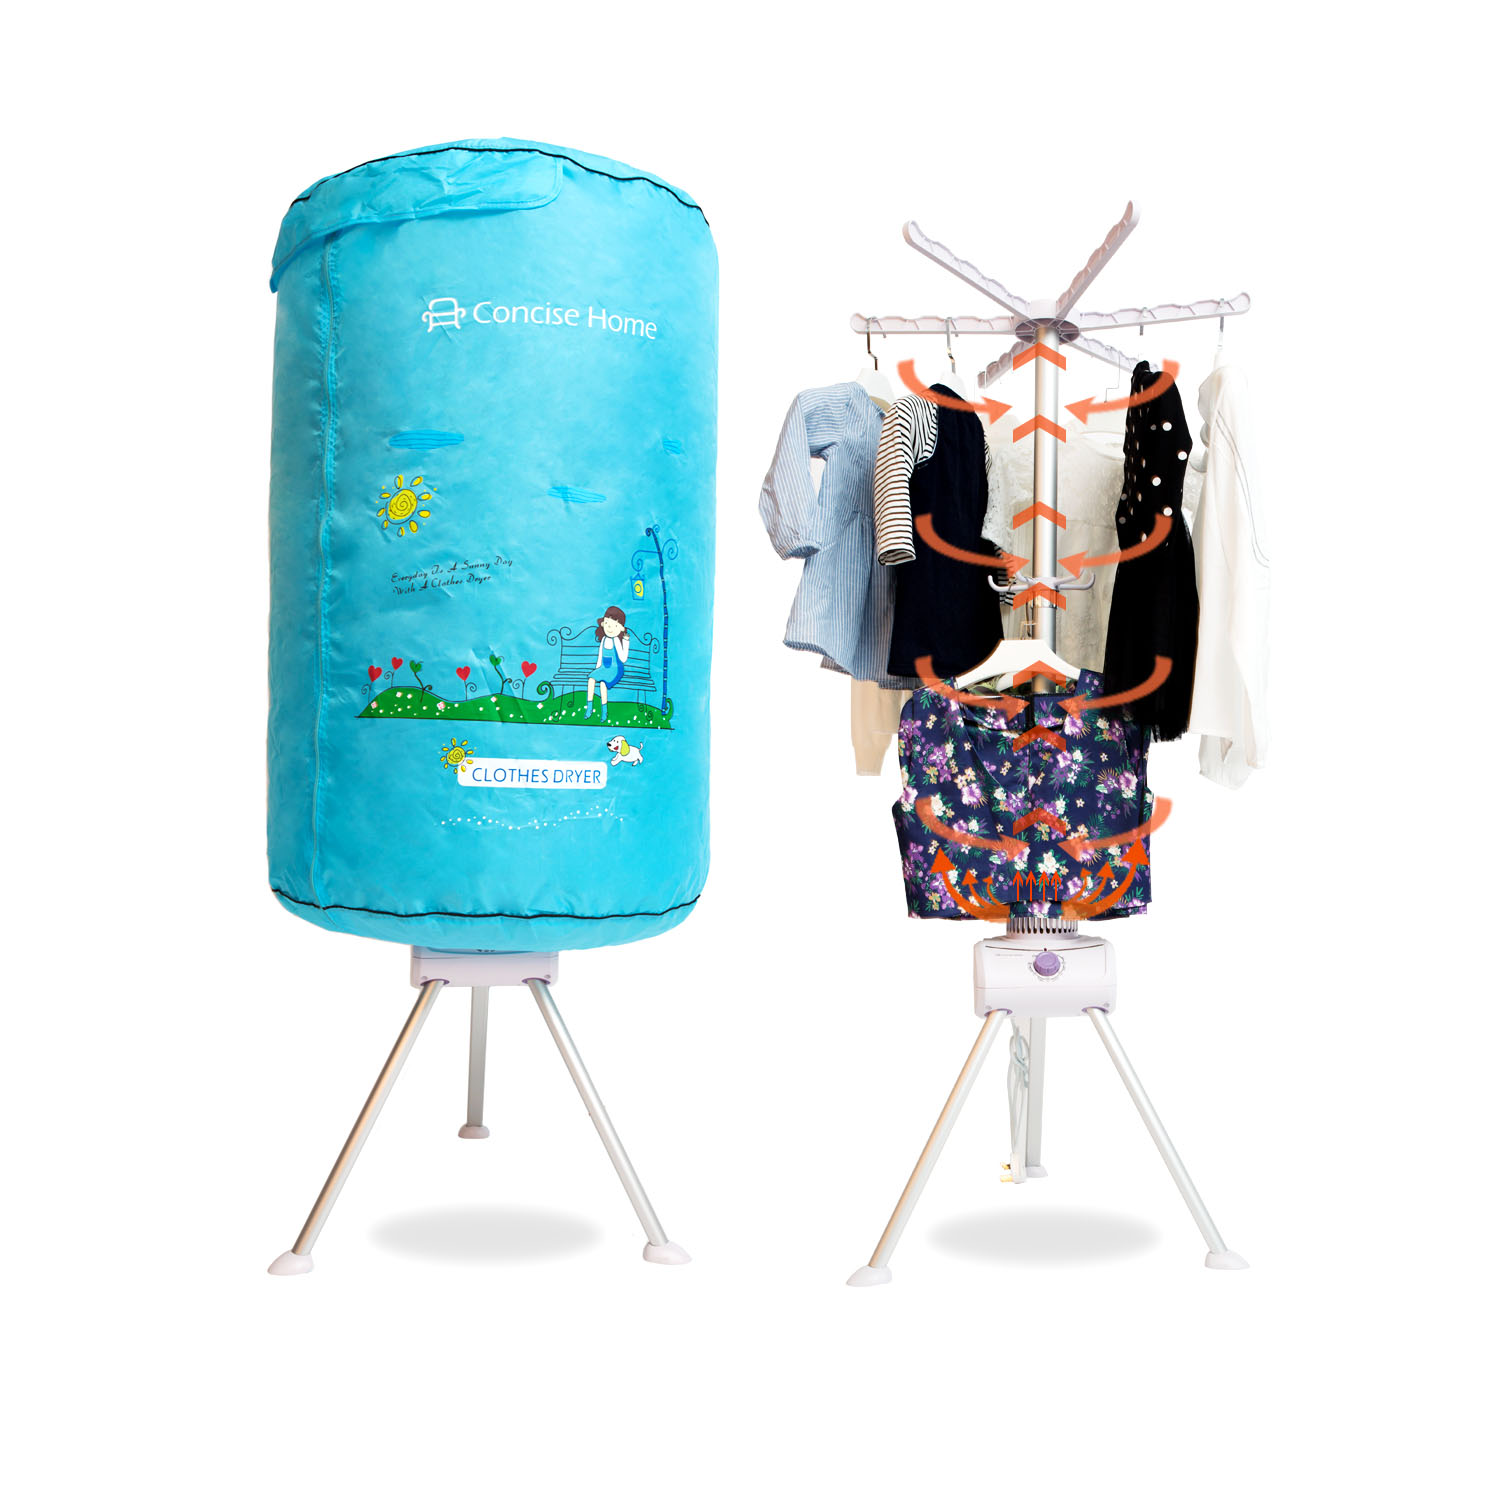 Concise Home Portable Electric Clothes Dryer Home Dorms